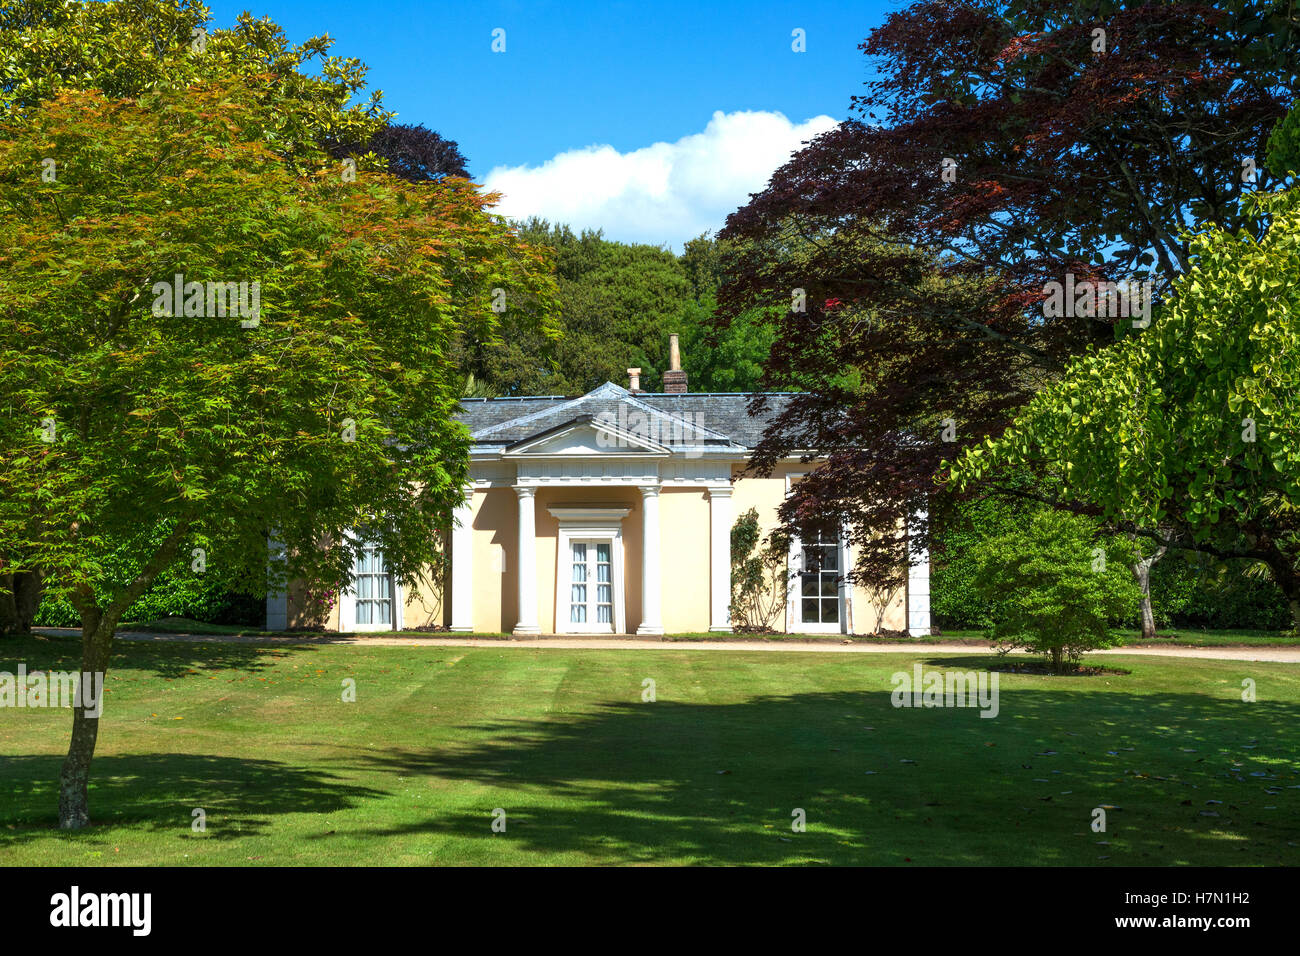 a summer house in the gardens at Mount Edgcumbe in Cornwall, England, UK - Stock Image